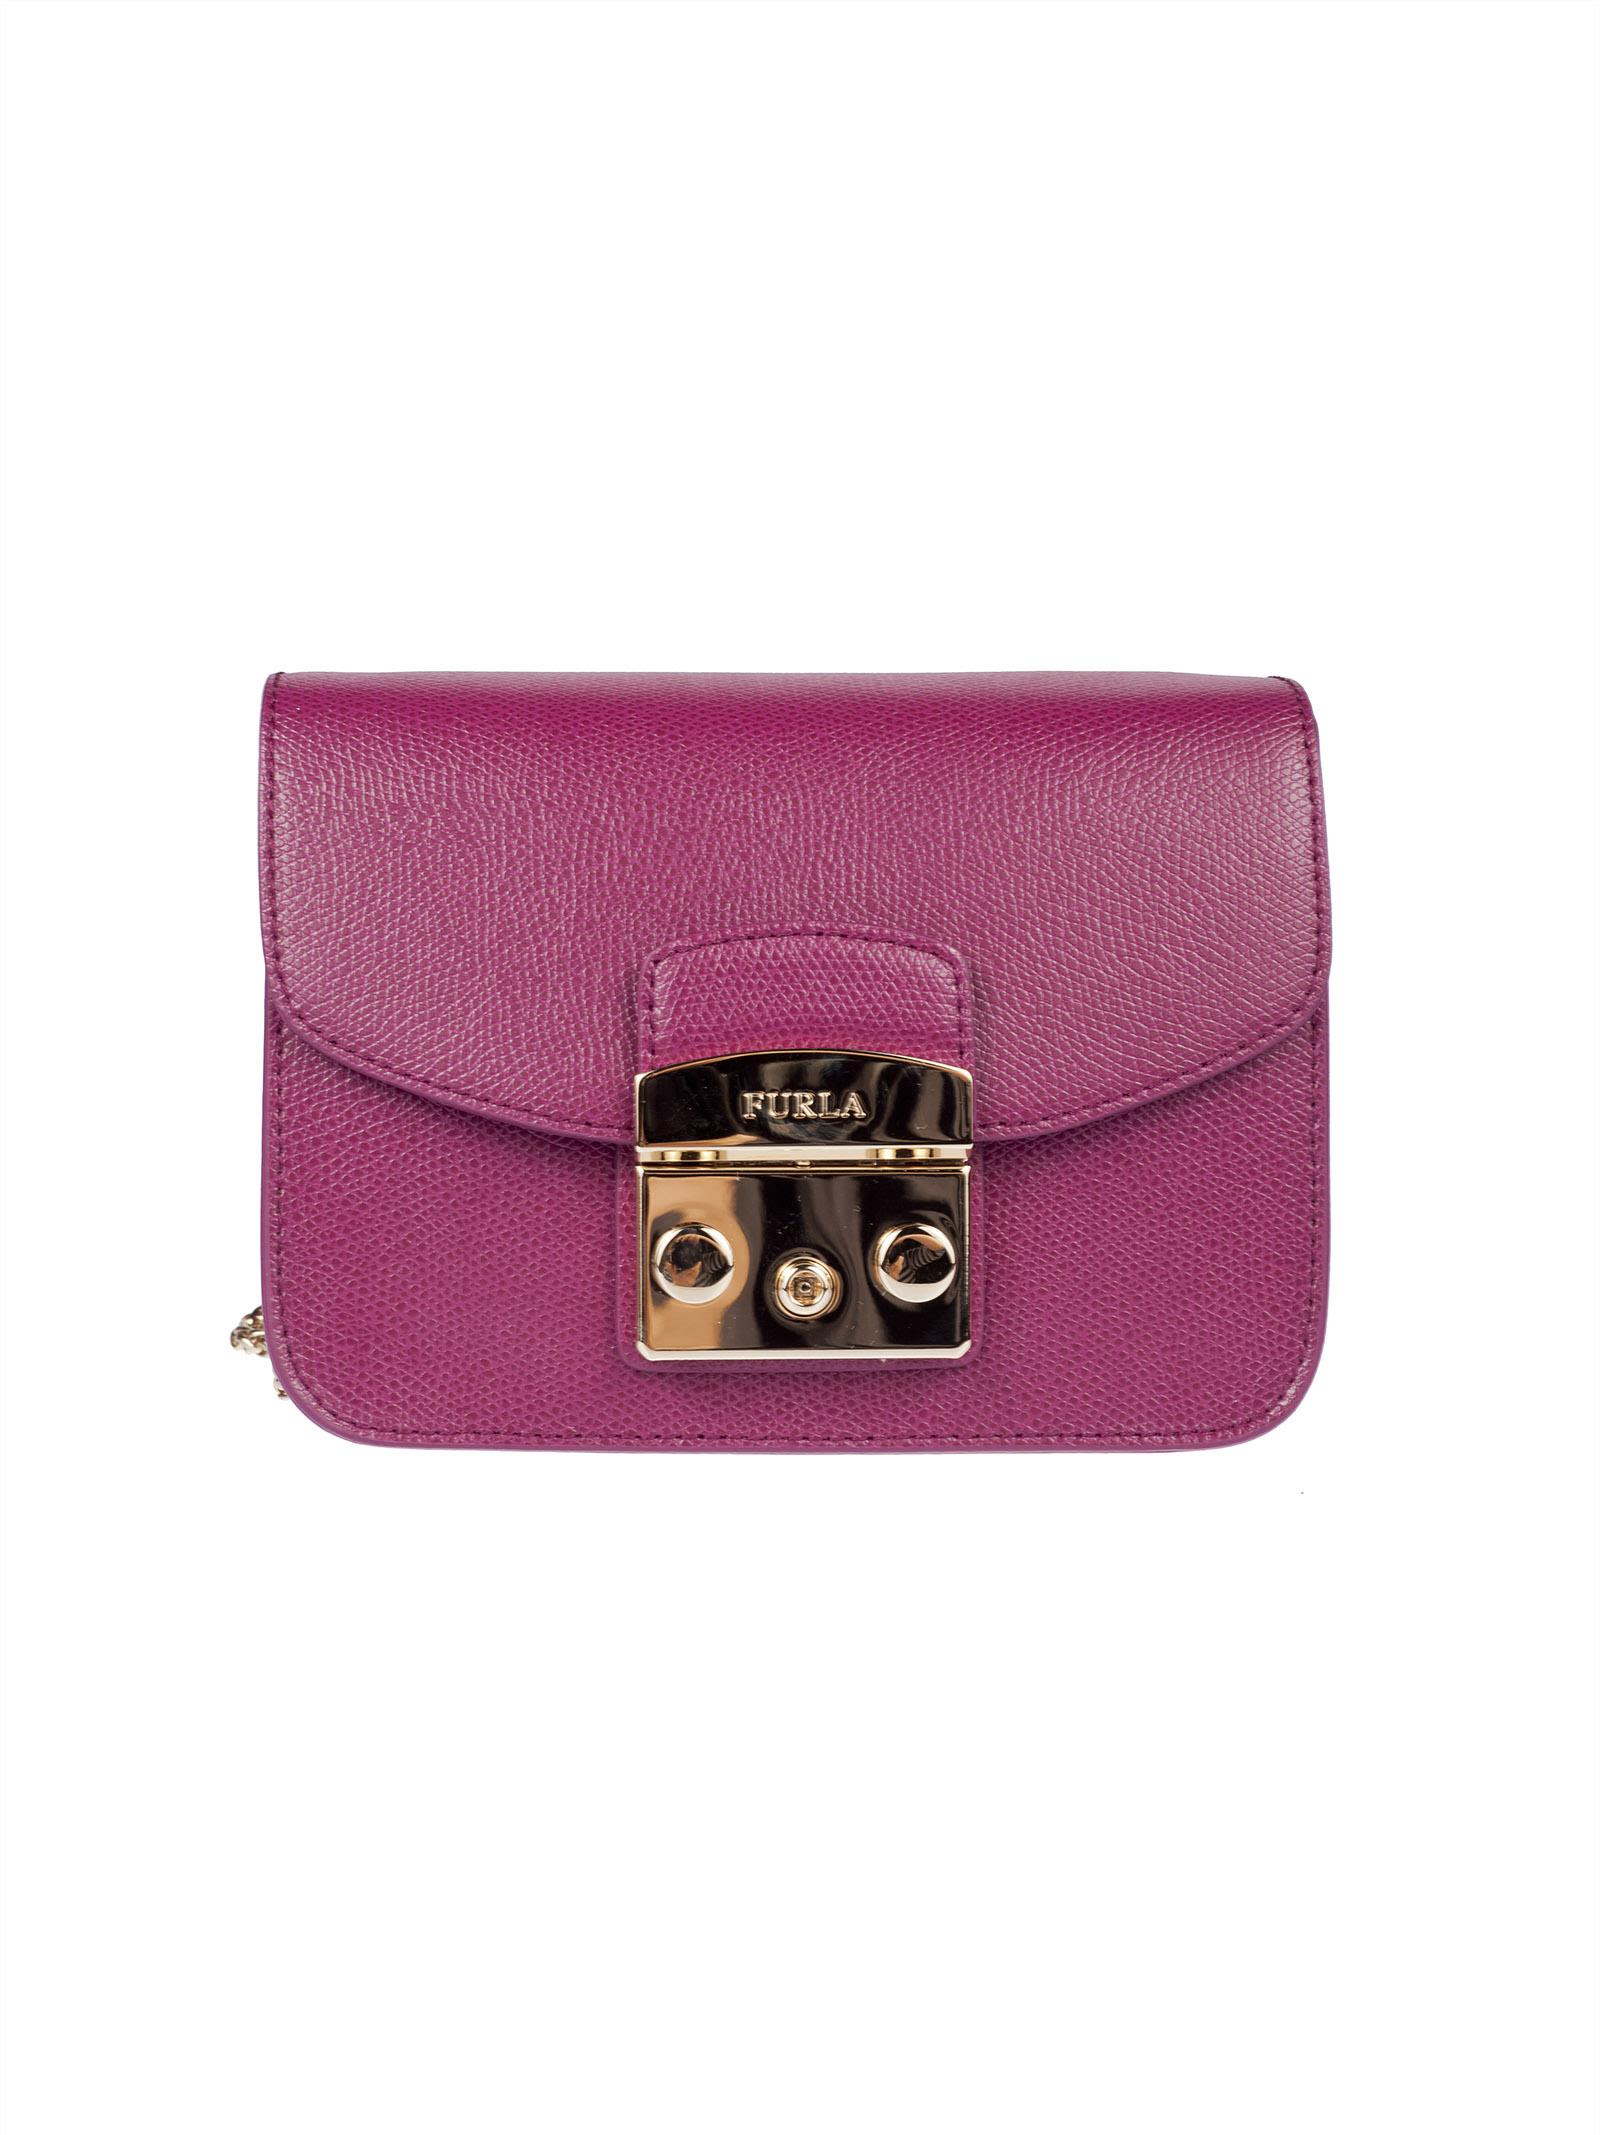 Metropolis crossbody bag - Pink & Purple Furla Buy Cheap Best Prices Big Sale Cheap Online Wide Range Of Cheap Online Cheap New Styles With Mastercard Online mbpwMyhJL